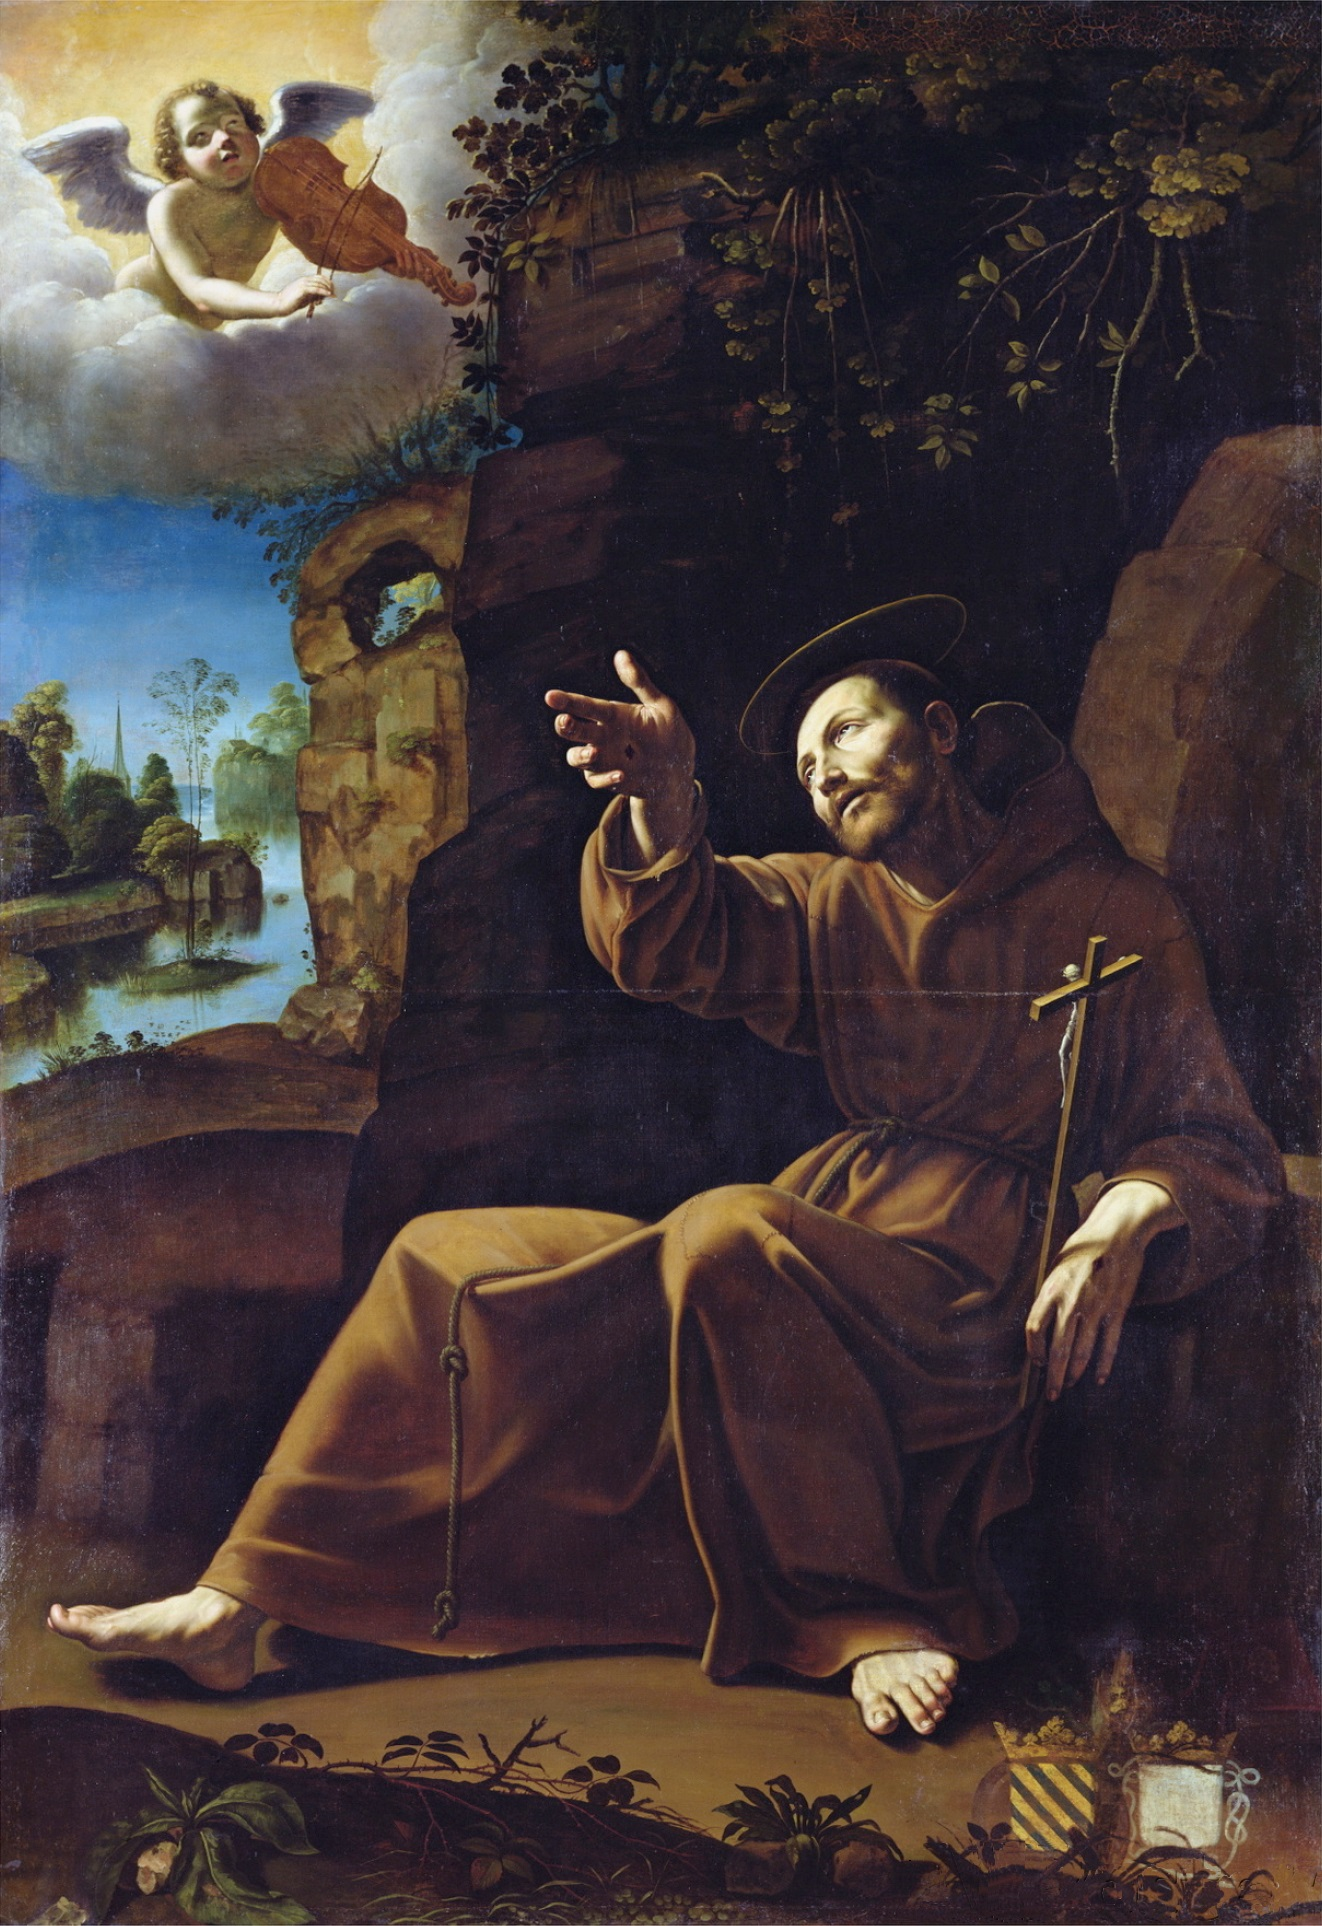 saint francis guys Find helpful customer reviews and review ratings for chasing francis: a pilgrim's tale at amazoncom read  saint francis i was  of the guys, and read and wrote.